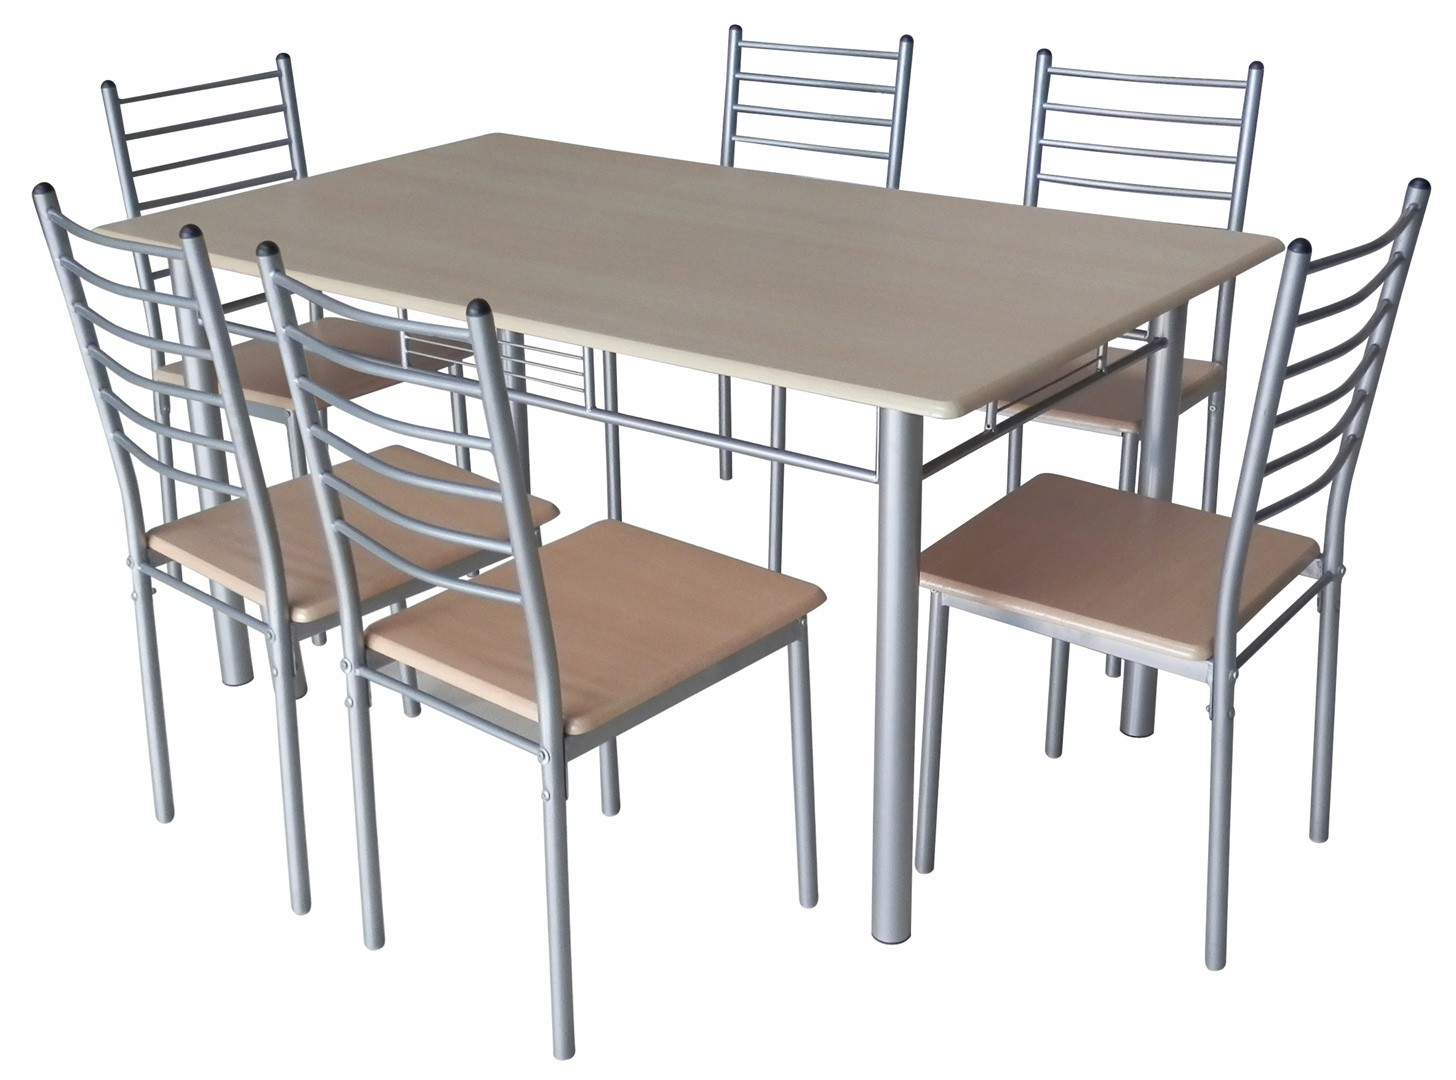 Ensemble table et chaises de cuisine but chaise id es for Table et chaise integree